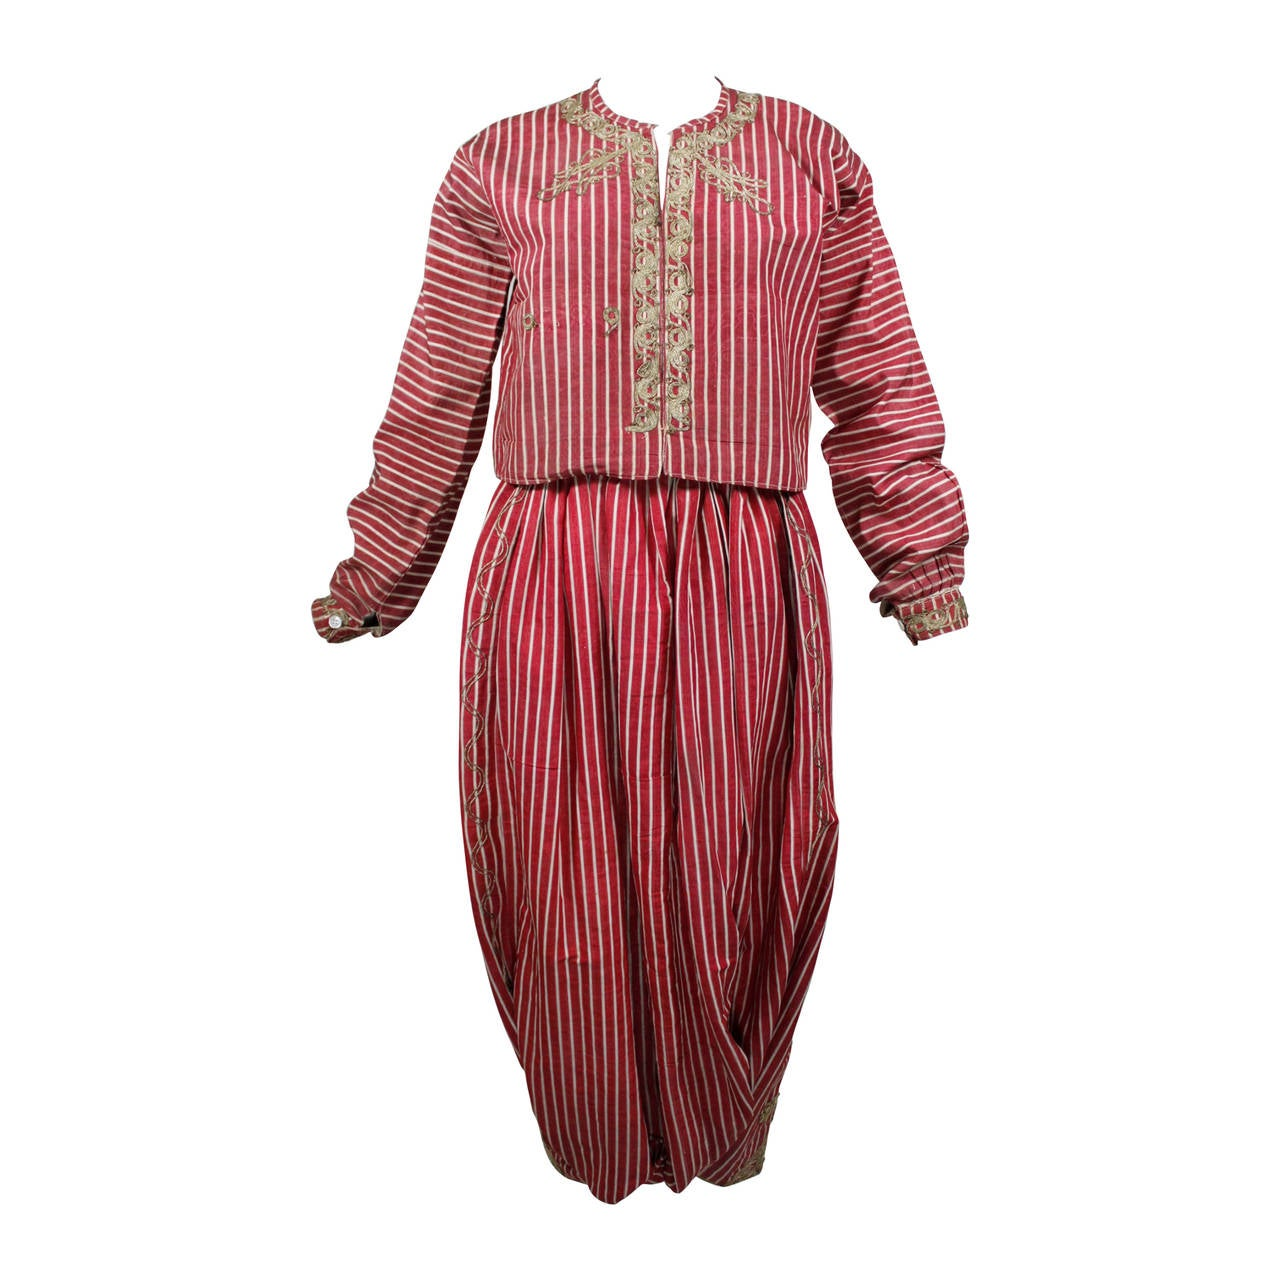 Turkish Silk Moire Striped Harem Pant Ensemble with Bullion Embroidery 1